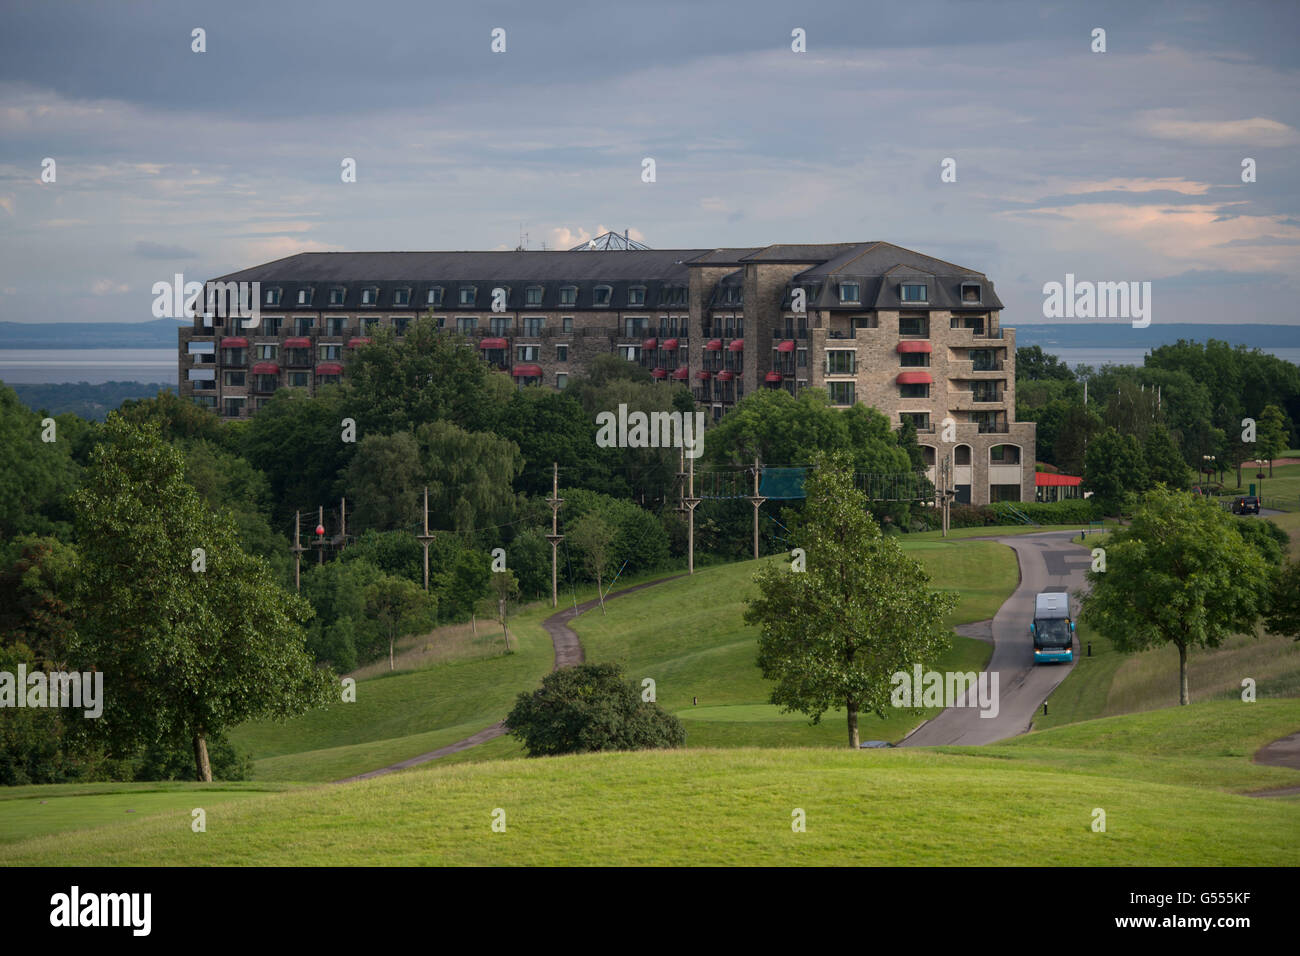 Una vista general del Celtic Manor hotel en Newport, Gales del Sur. Imagen De Stock